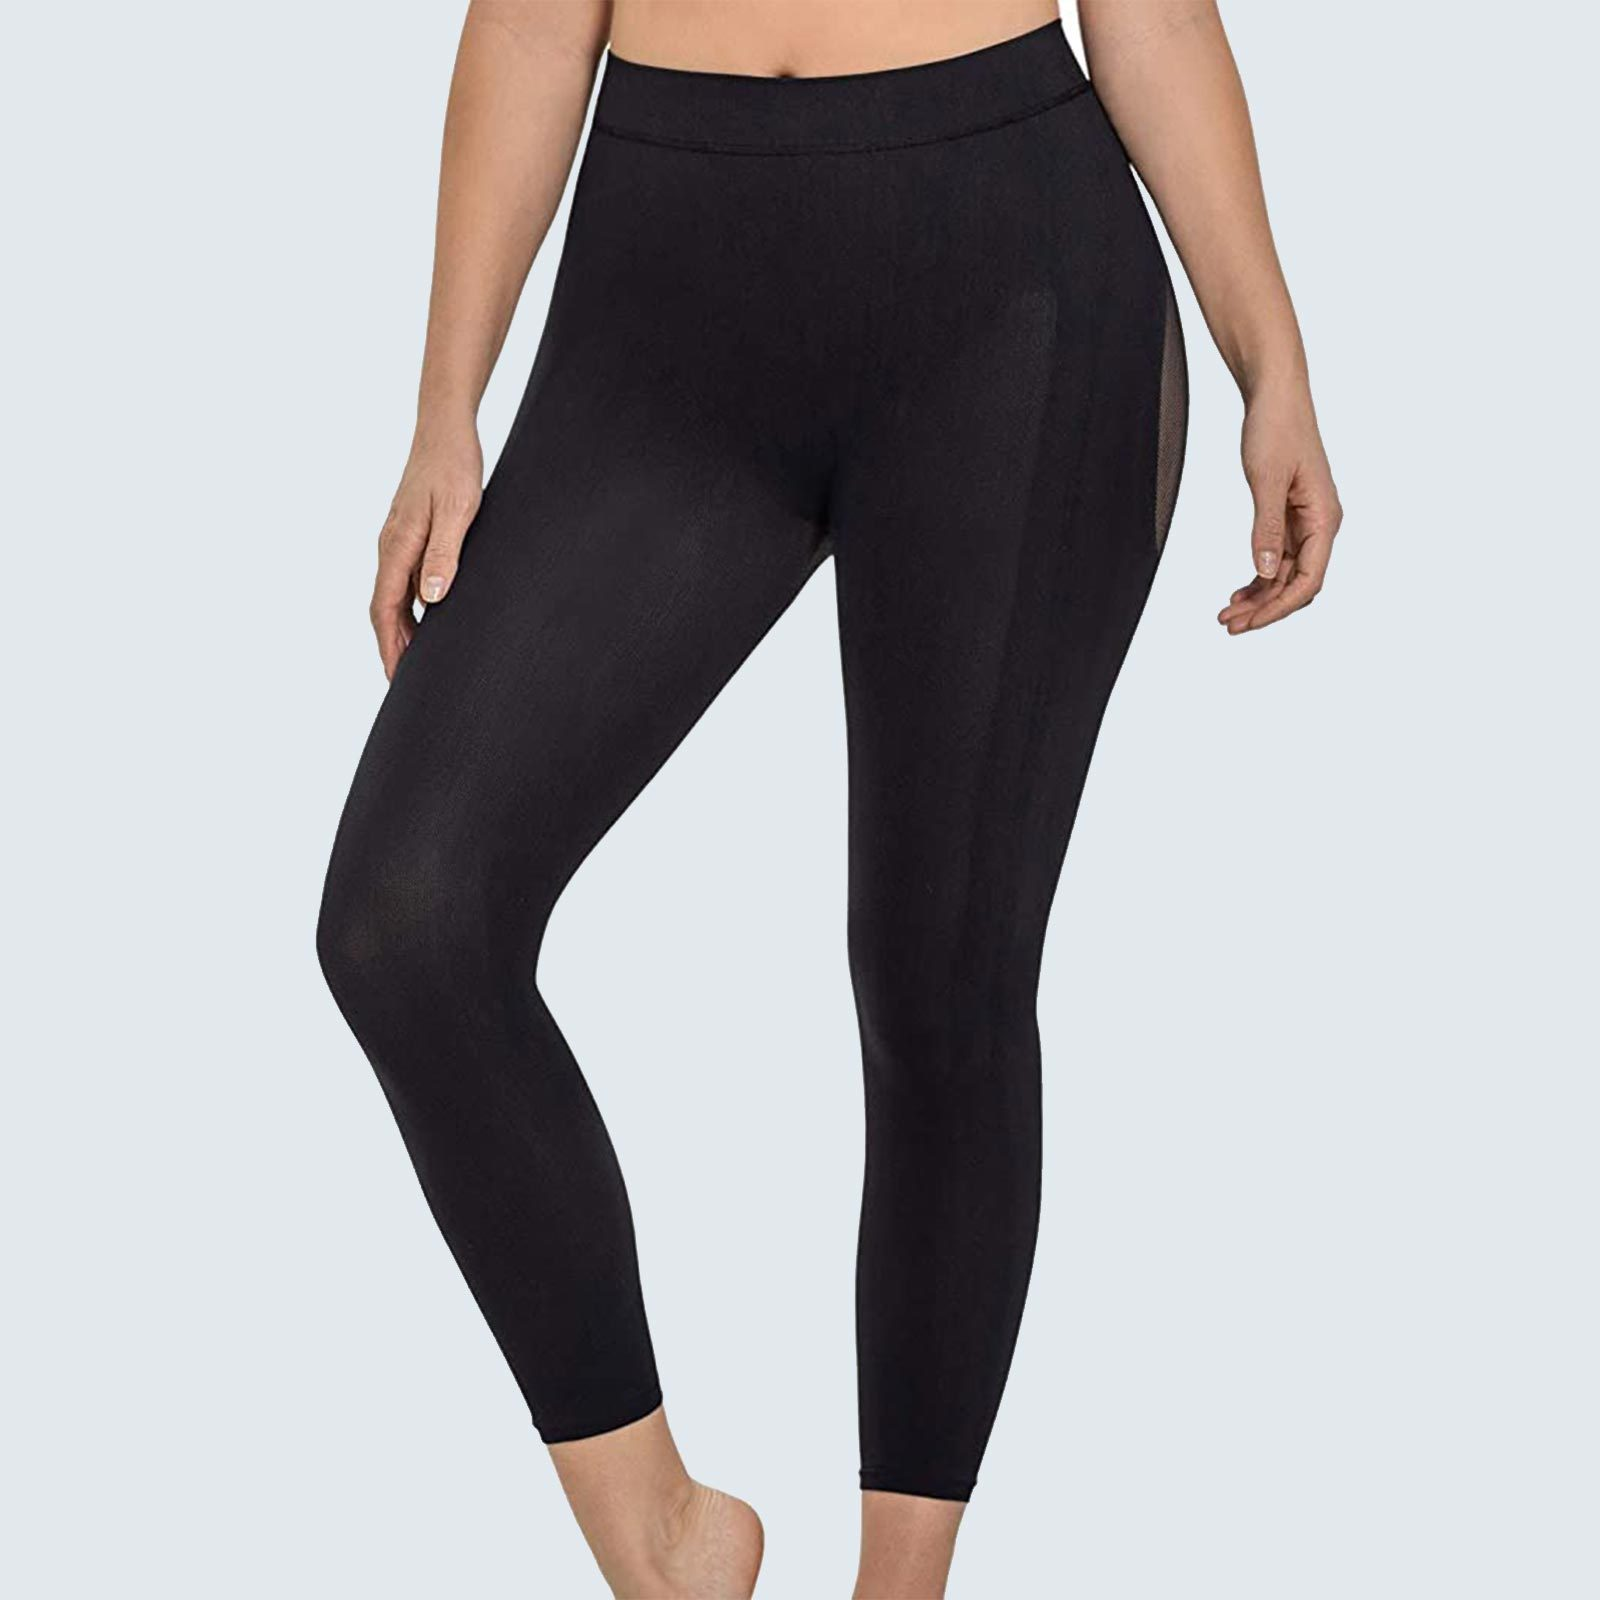 Best post-surgical leggings: Leonisa Invisible Waist to Thigh Post-Surgical Capris